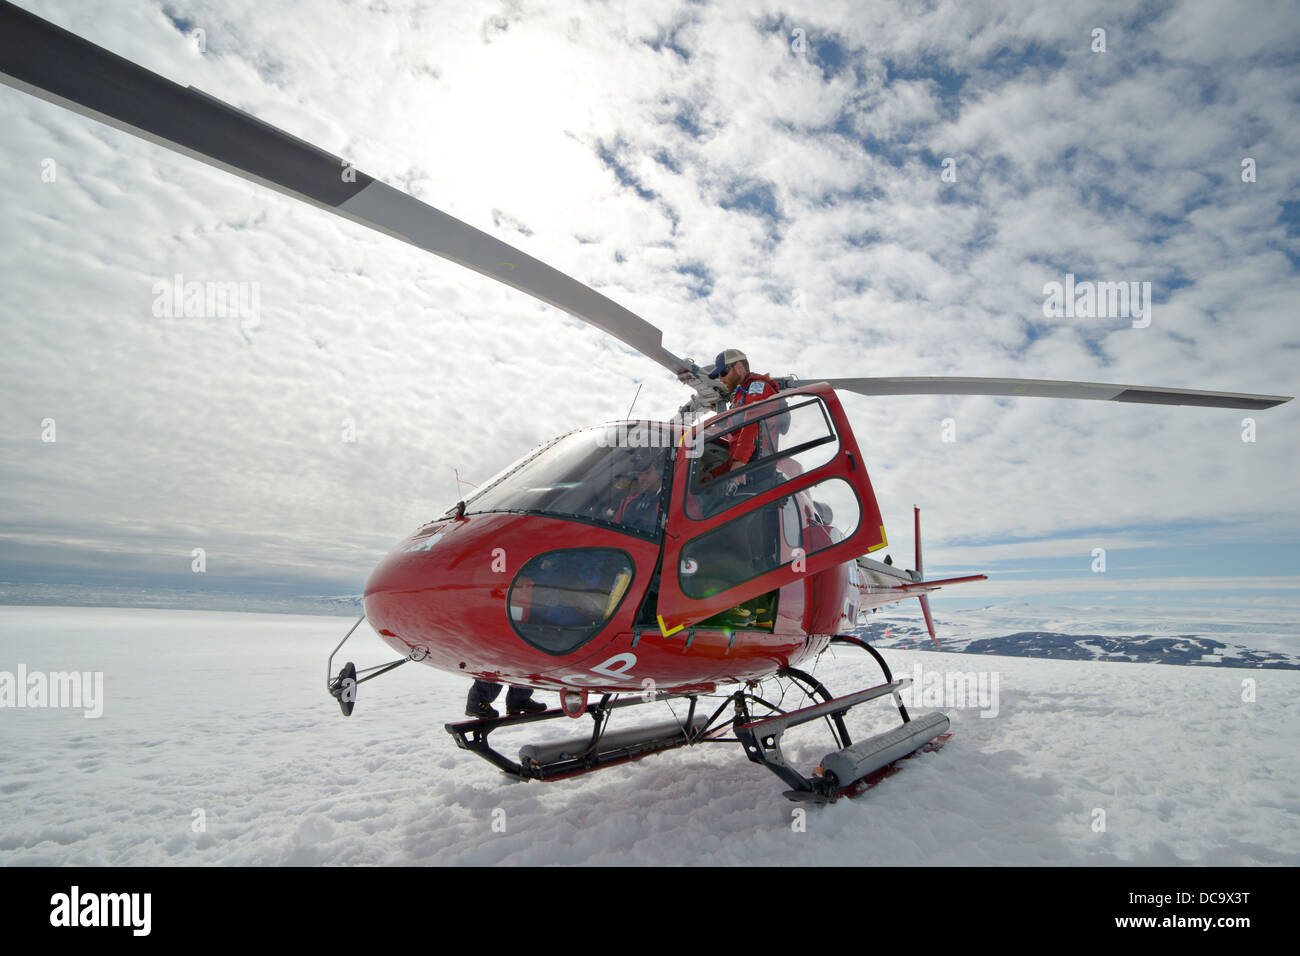 North South Polar's safety team leader, John Bradley, boards an Air Greenland A-Star helicopter heading to a - Stock Image